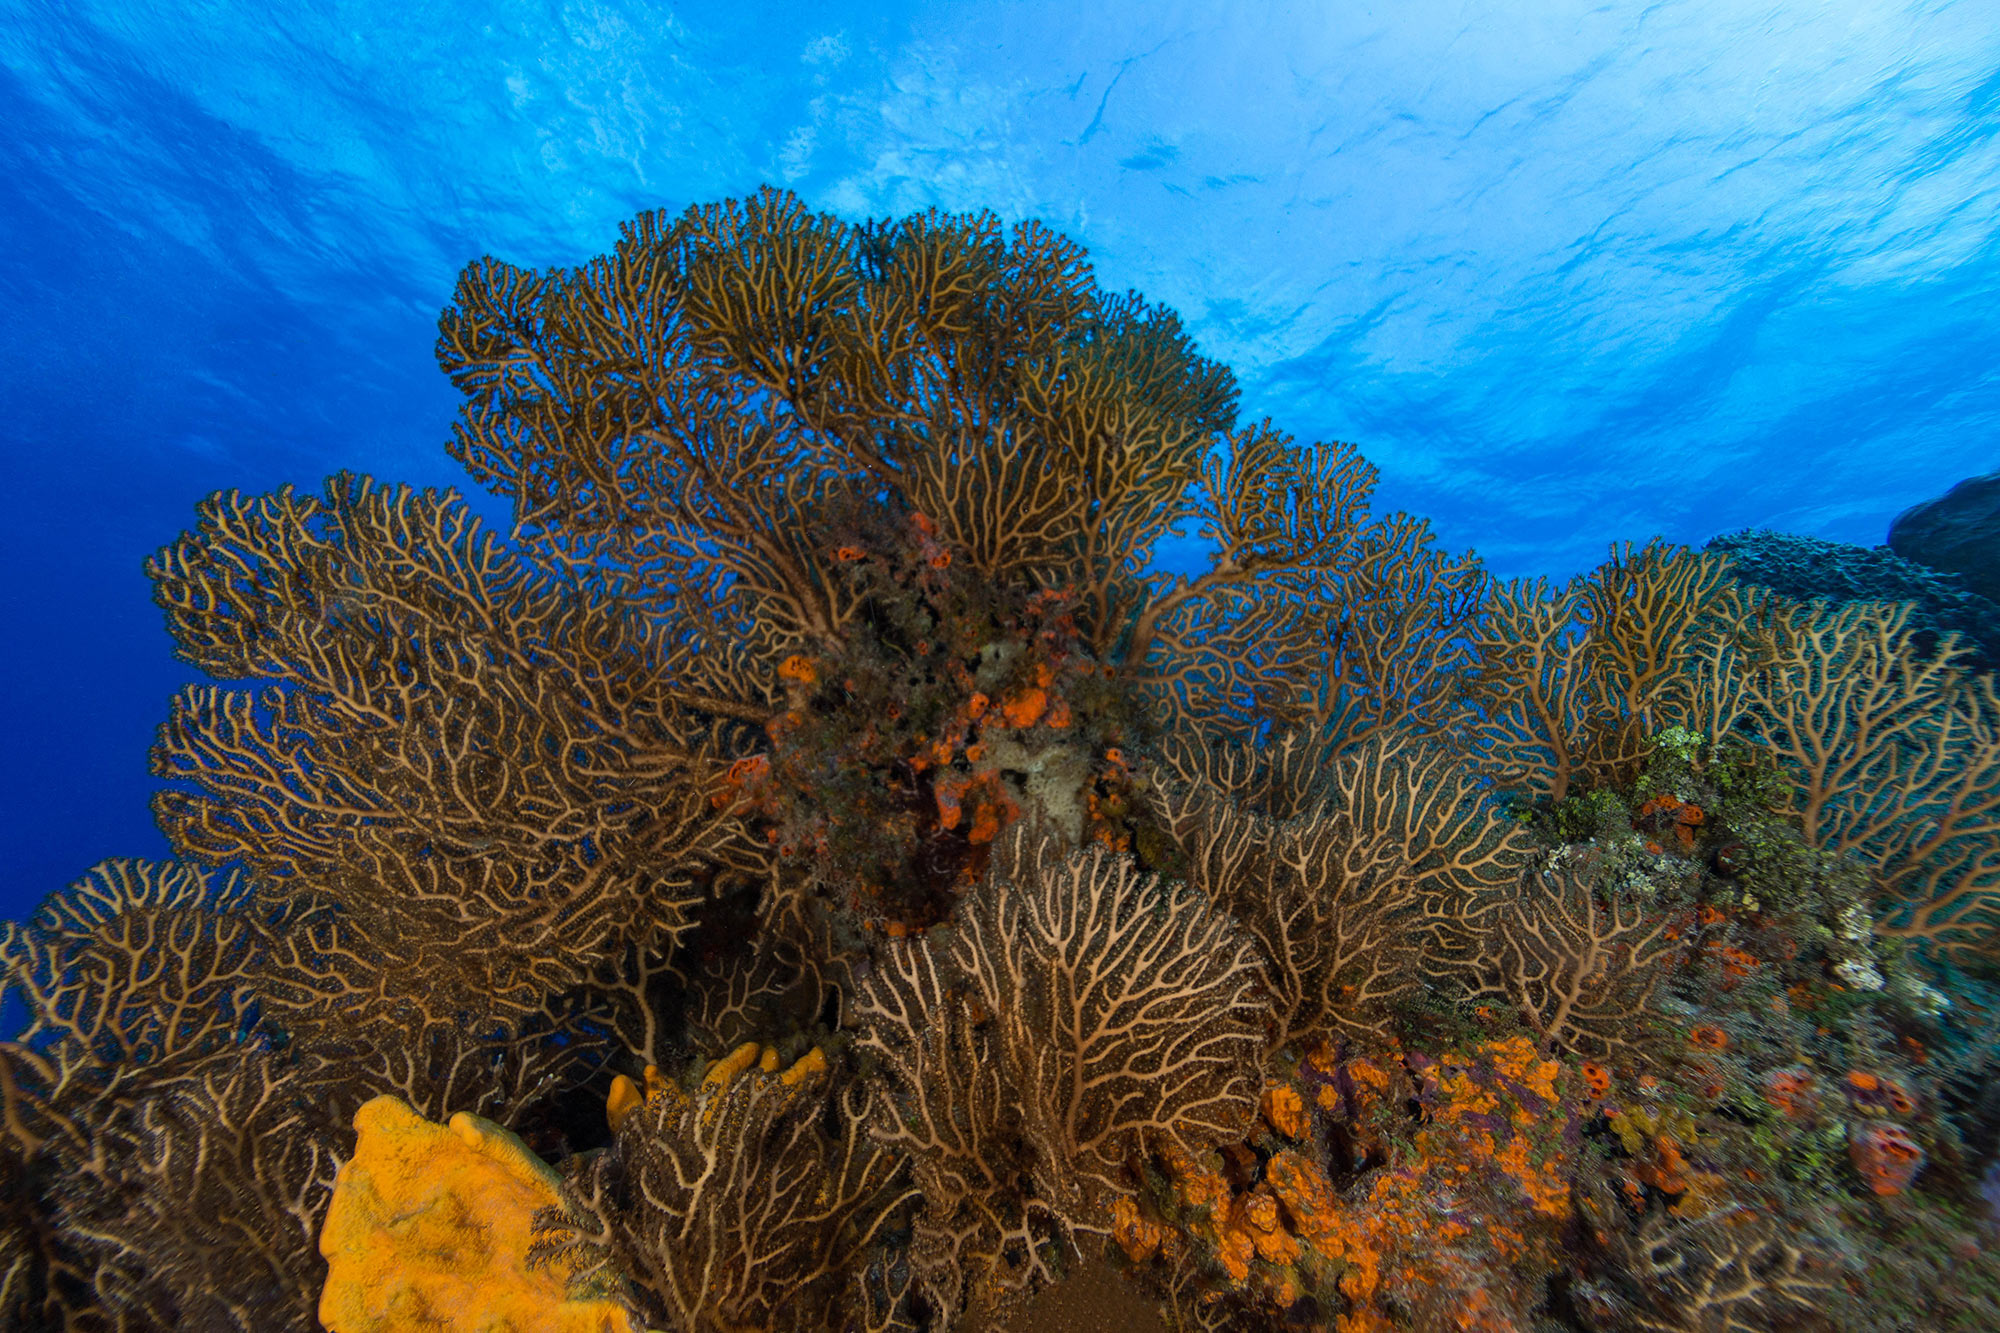 The Gorgonian Coral Gardens Of Cozumel, Mexico